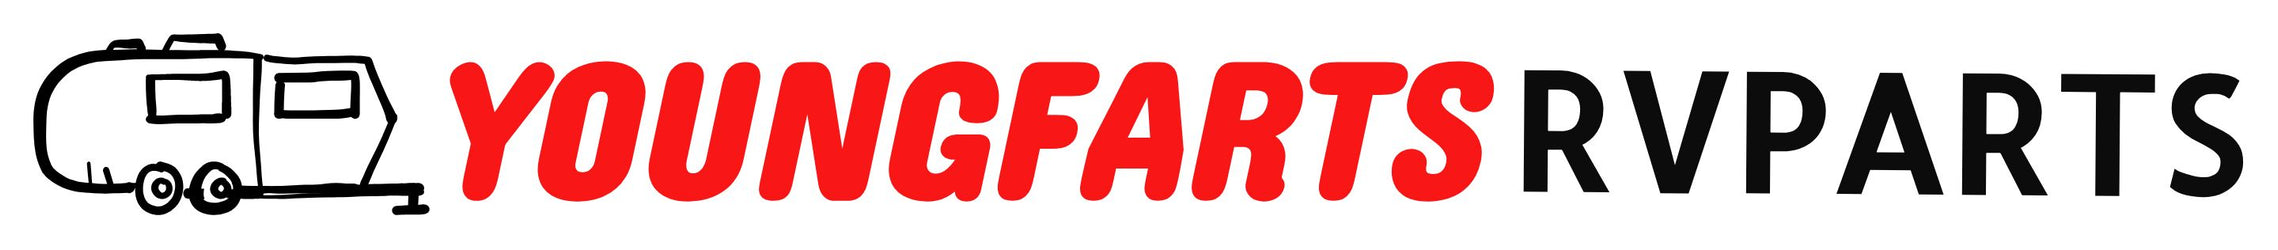 New & Used RV Part Sales | Young Farts RV Parts